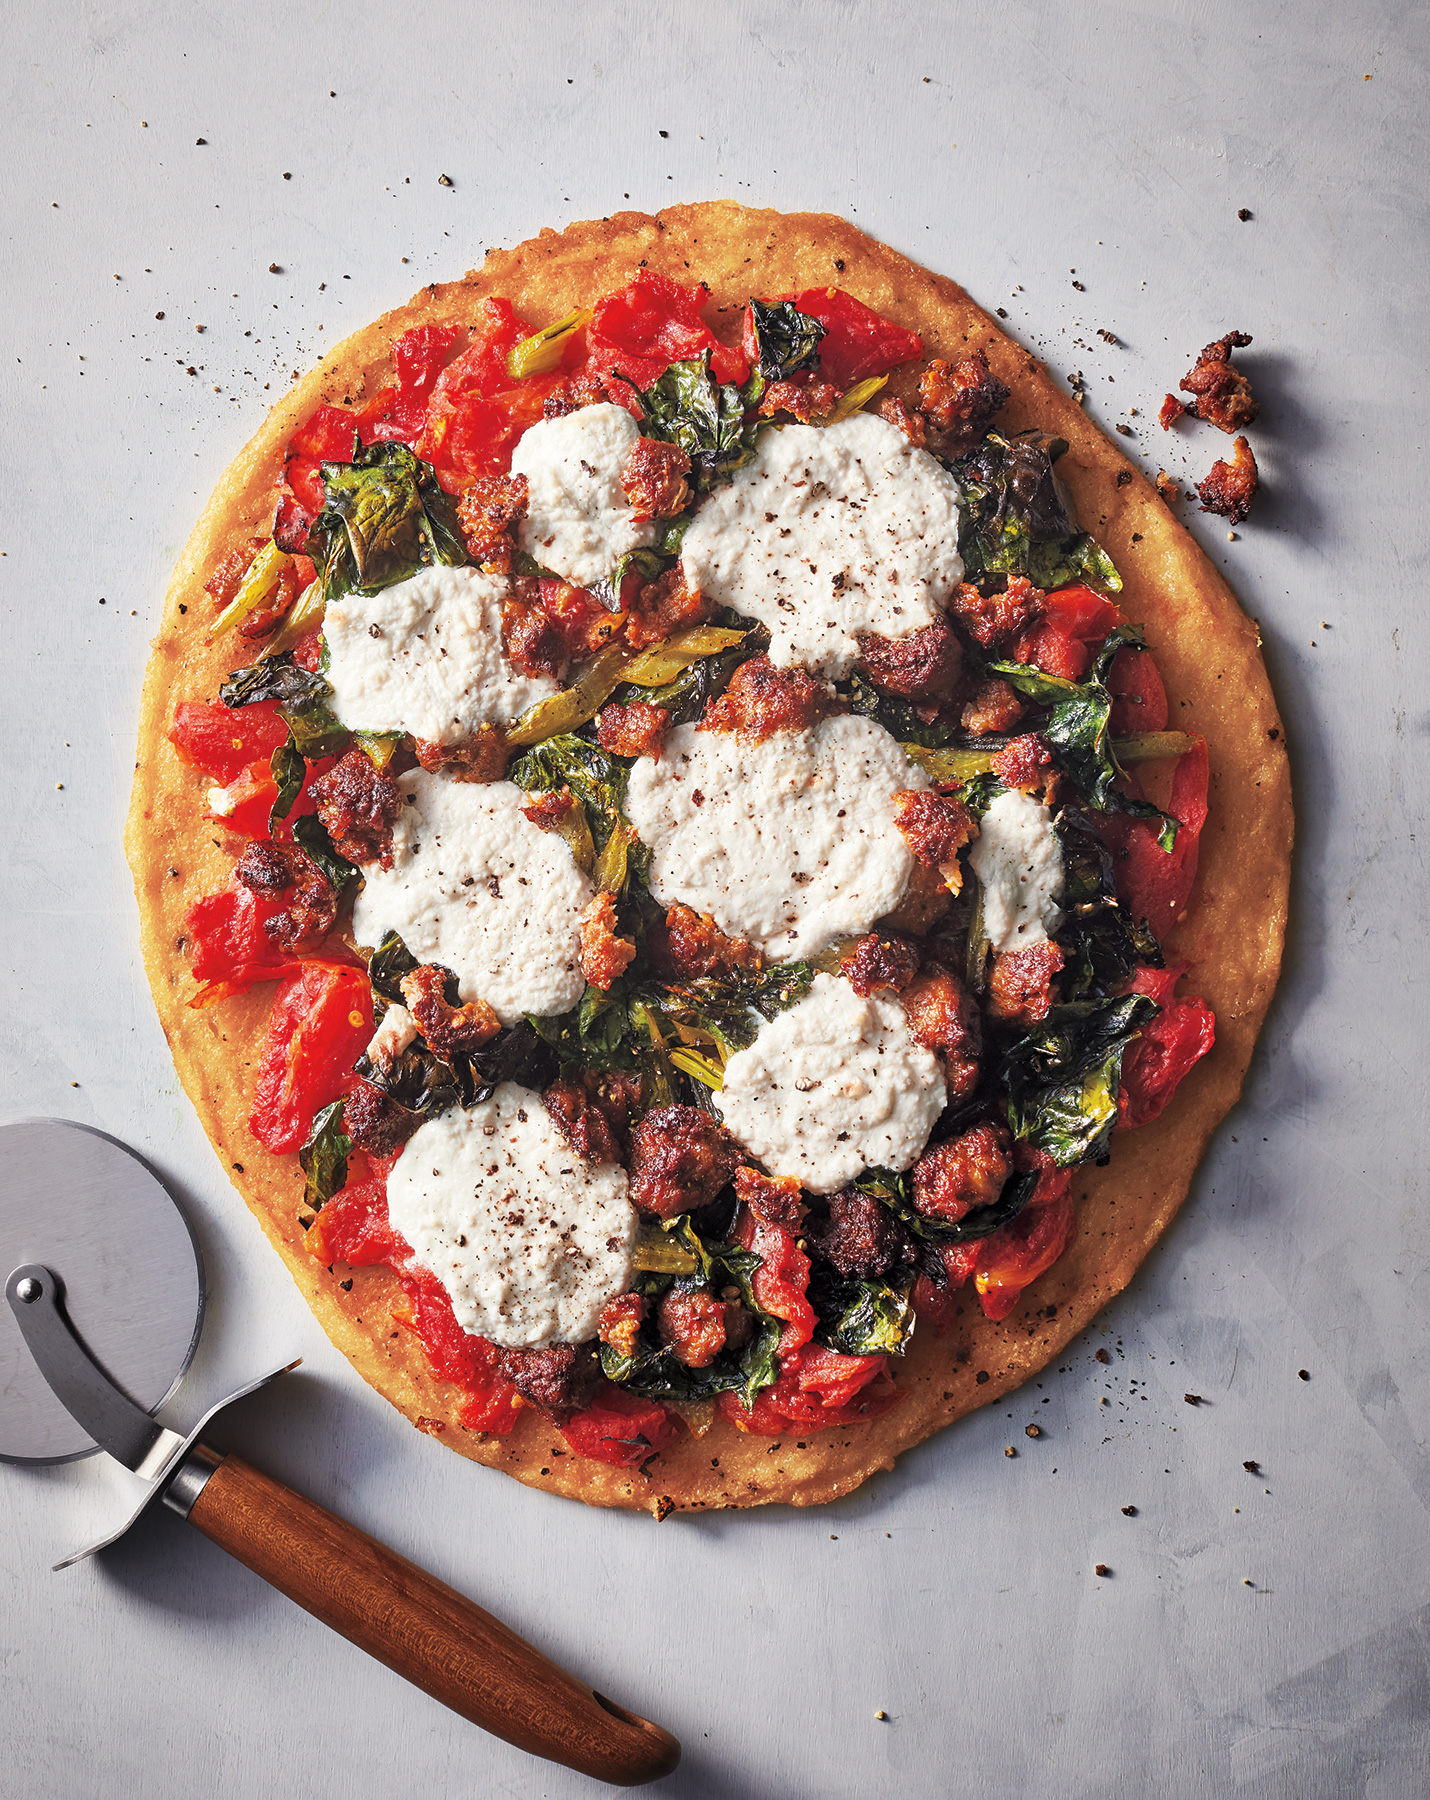 Polenta Pizza With Sausage, Swiss Chard, and Ricotta (1018FOO)